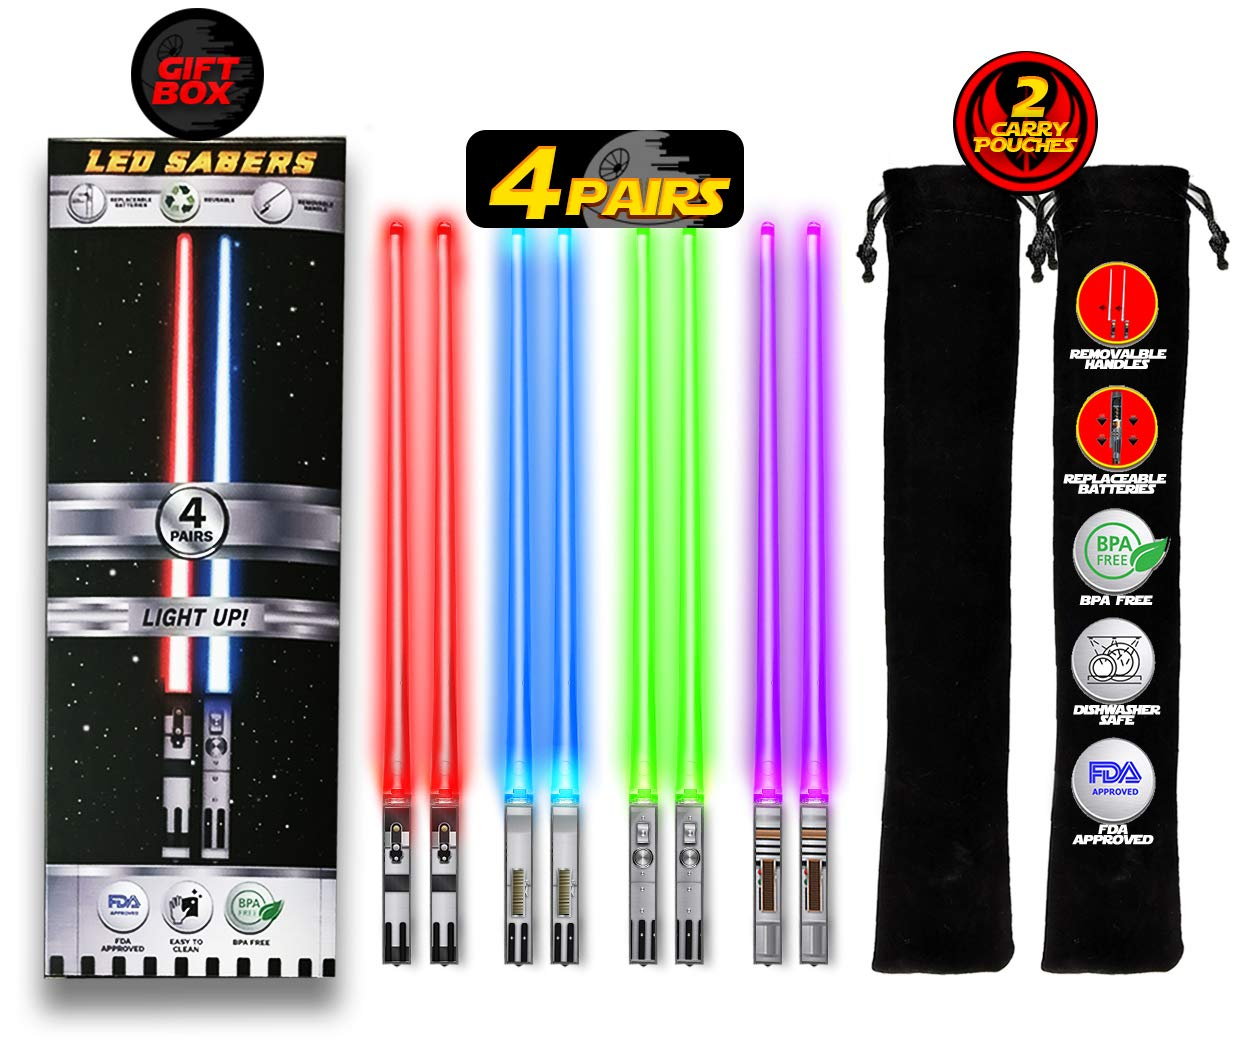 LIGHTSABER CHOPSTICKS LIGHT UP STAR WARS LED Glowing Light Saber Chop Sticks REUSABLE Sushi Lightup Sabers Removable Handle Dishwasher Safe Red Blue Green Purple 4 Pairs